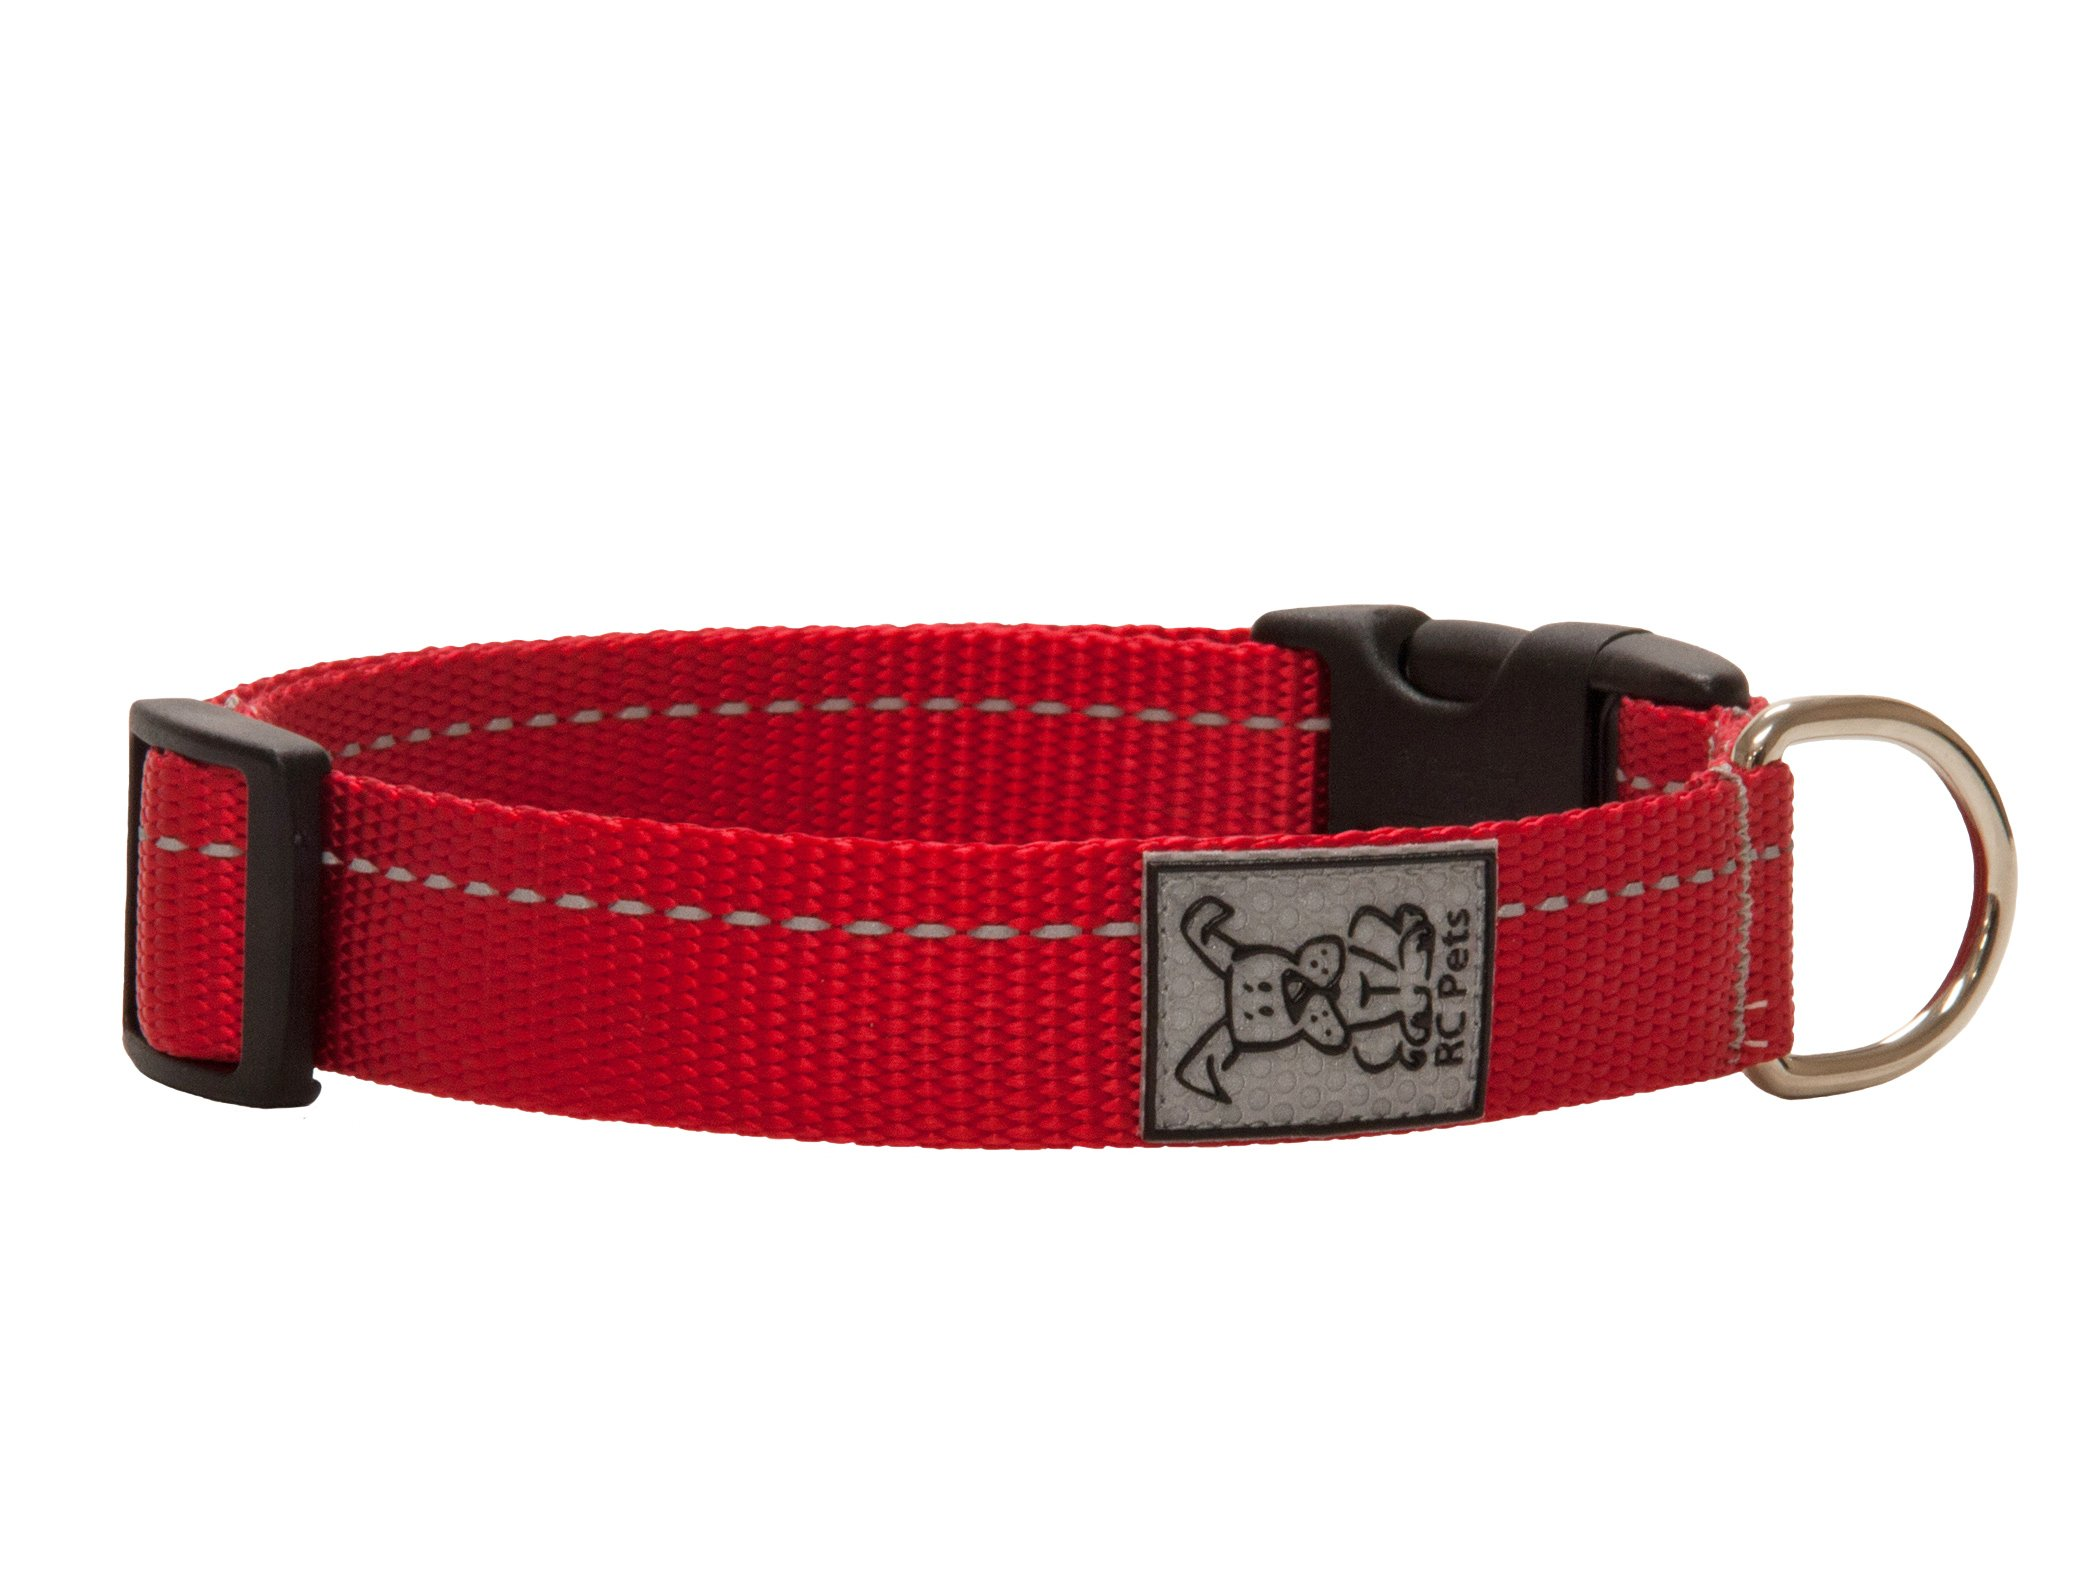 RC Pet Products 1 Inch Primary Collection Adjustable Dog Collar, Medium, Red